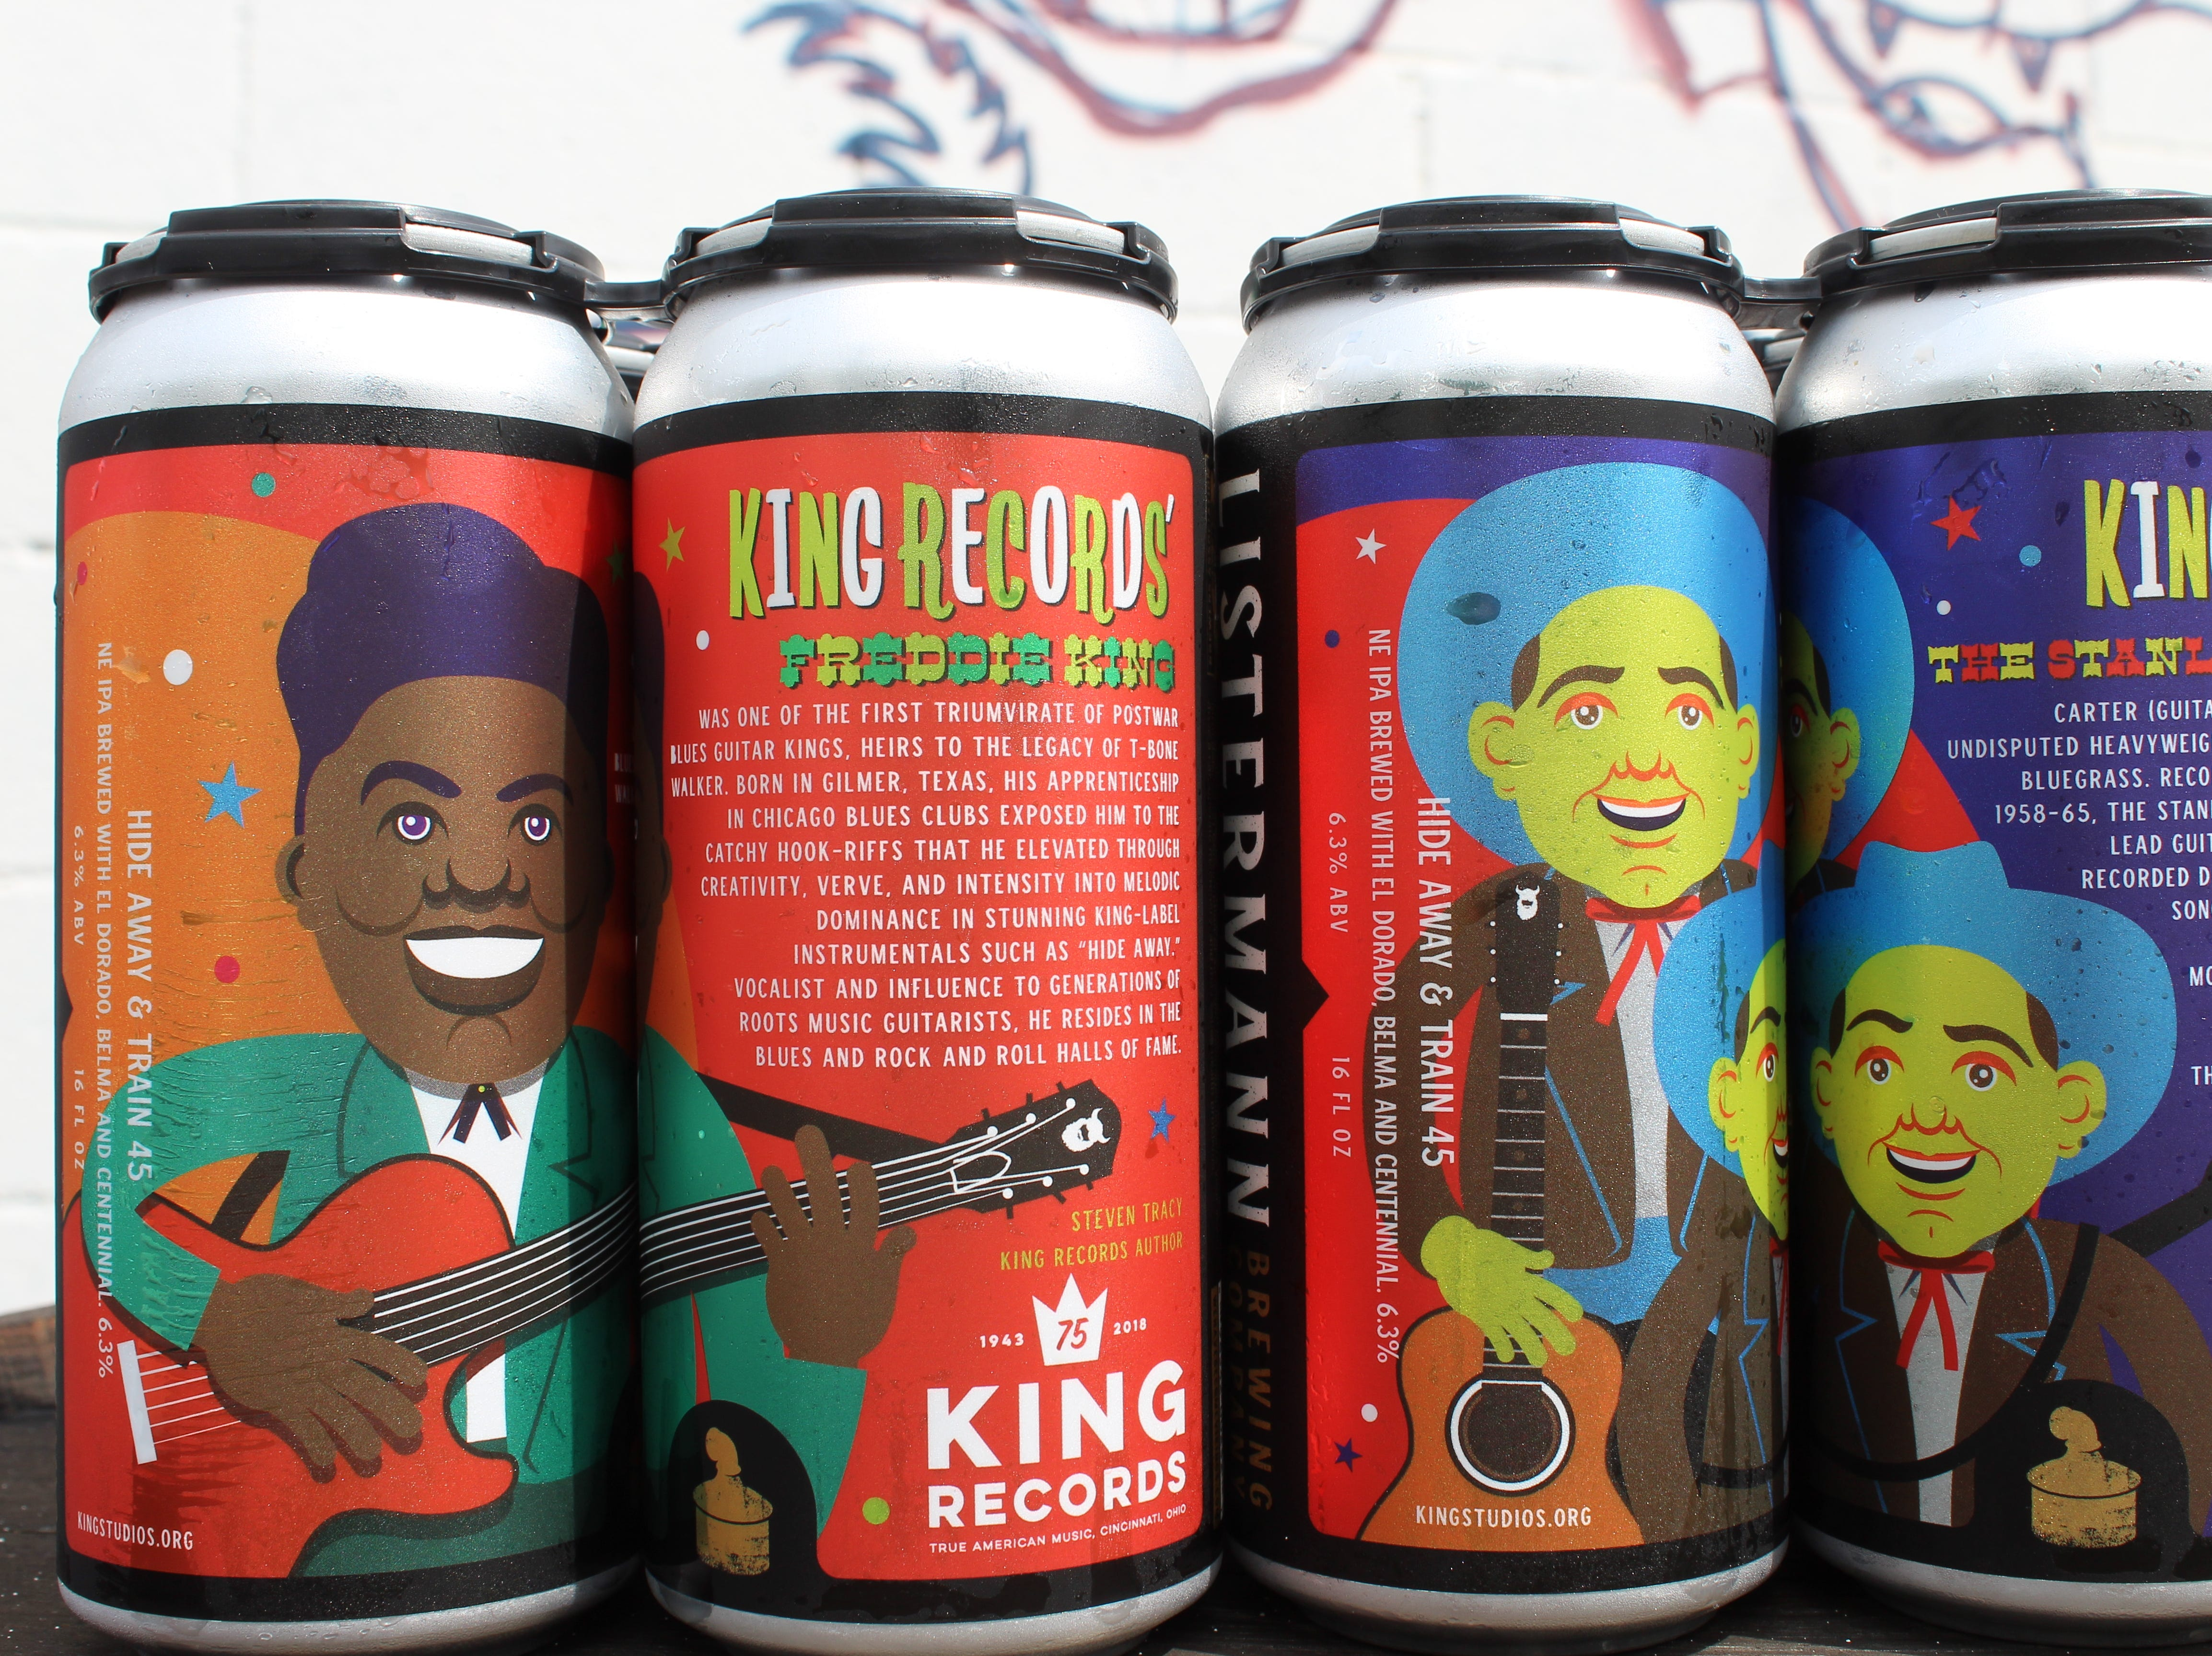 Listermann Brewing Company salutes Blues and Bluegrass music recorded in Cincinnati at King Records with a new beer collaboration